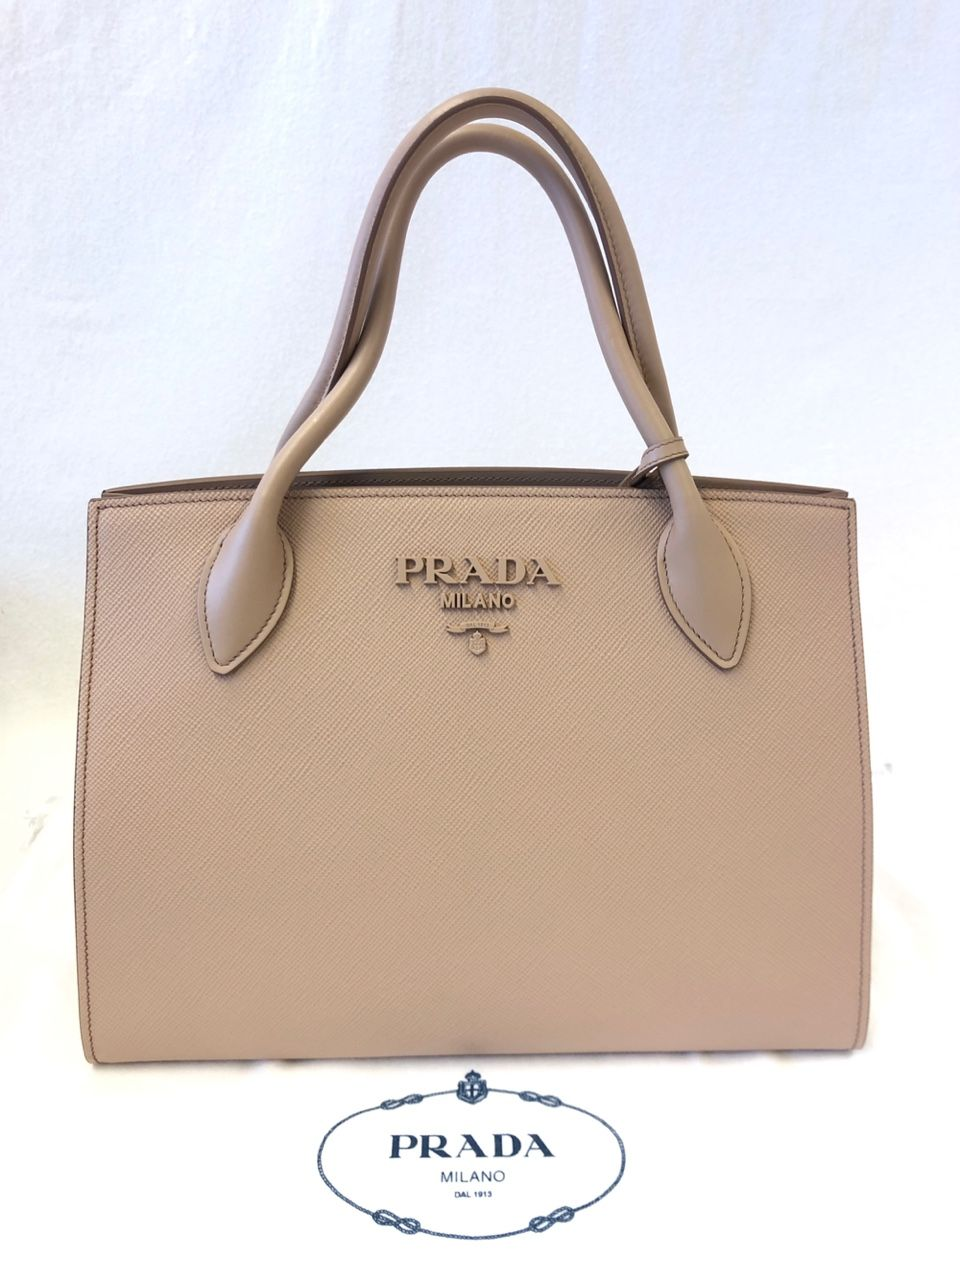 Prada Galleria Medium leather tote P00434932